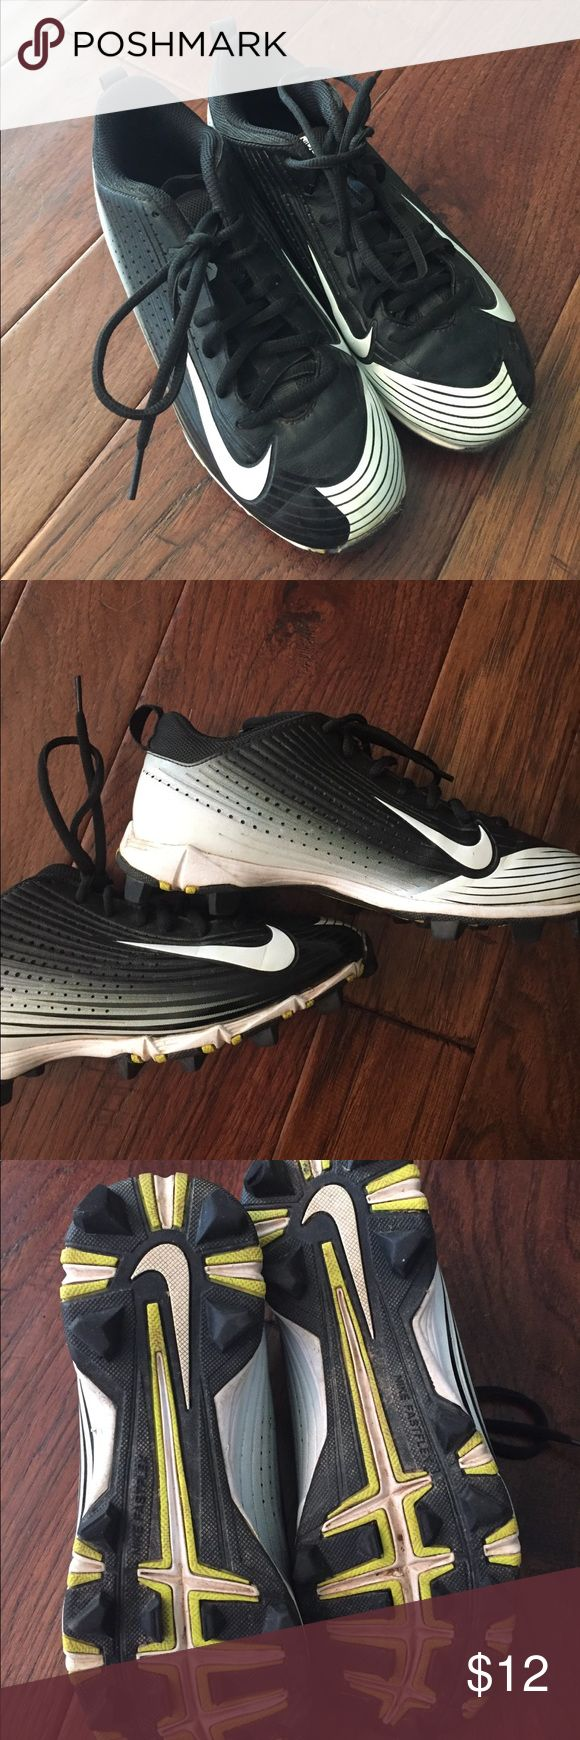 Nike Vapor Kids Cleats 4.5 Youth Cleats were used for one season. In excellent condition. Youth 4.5. Nike Shoes